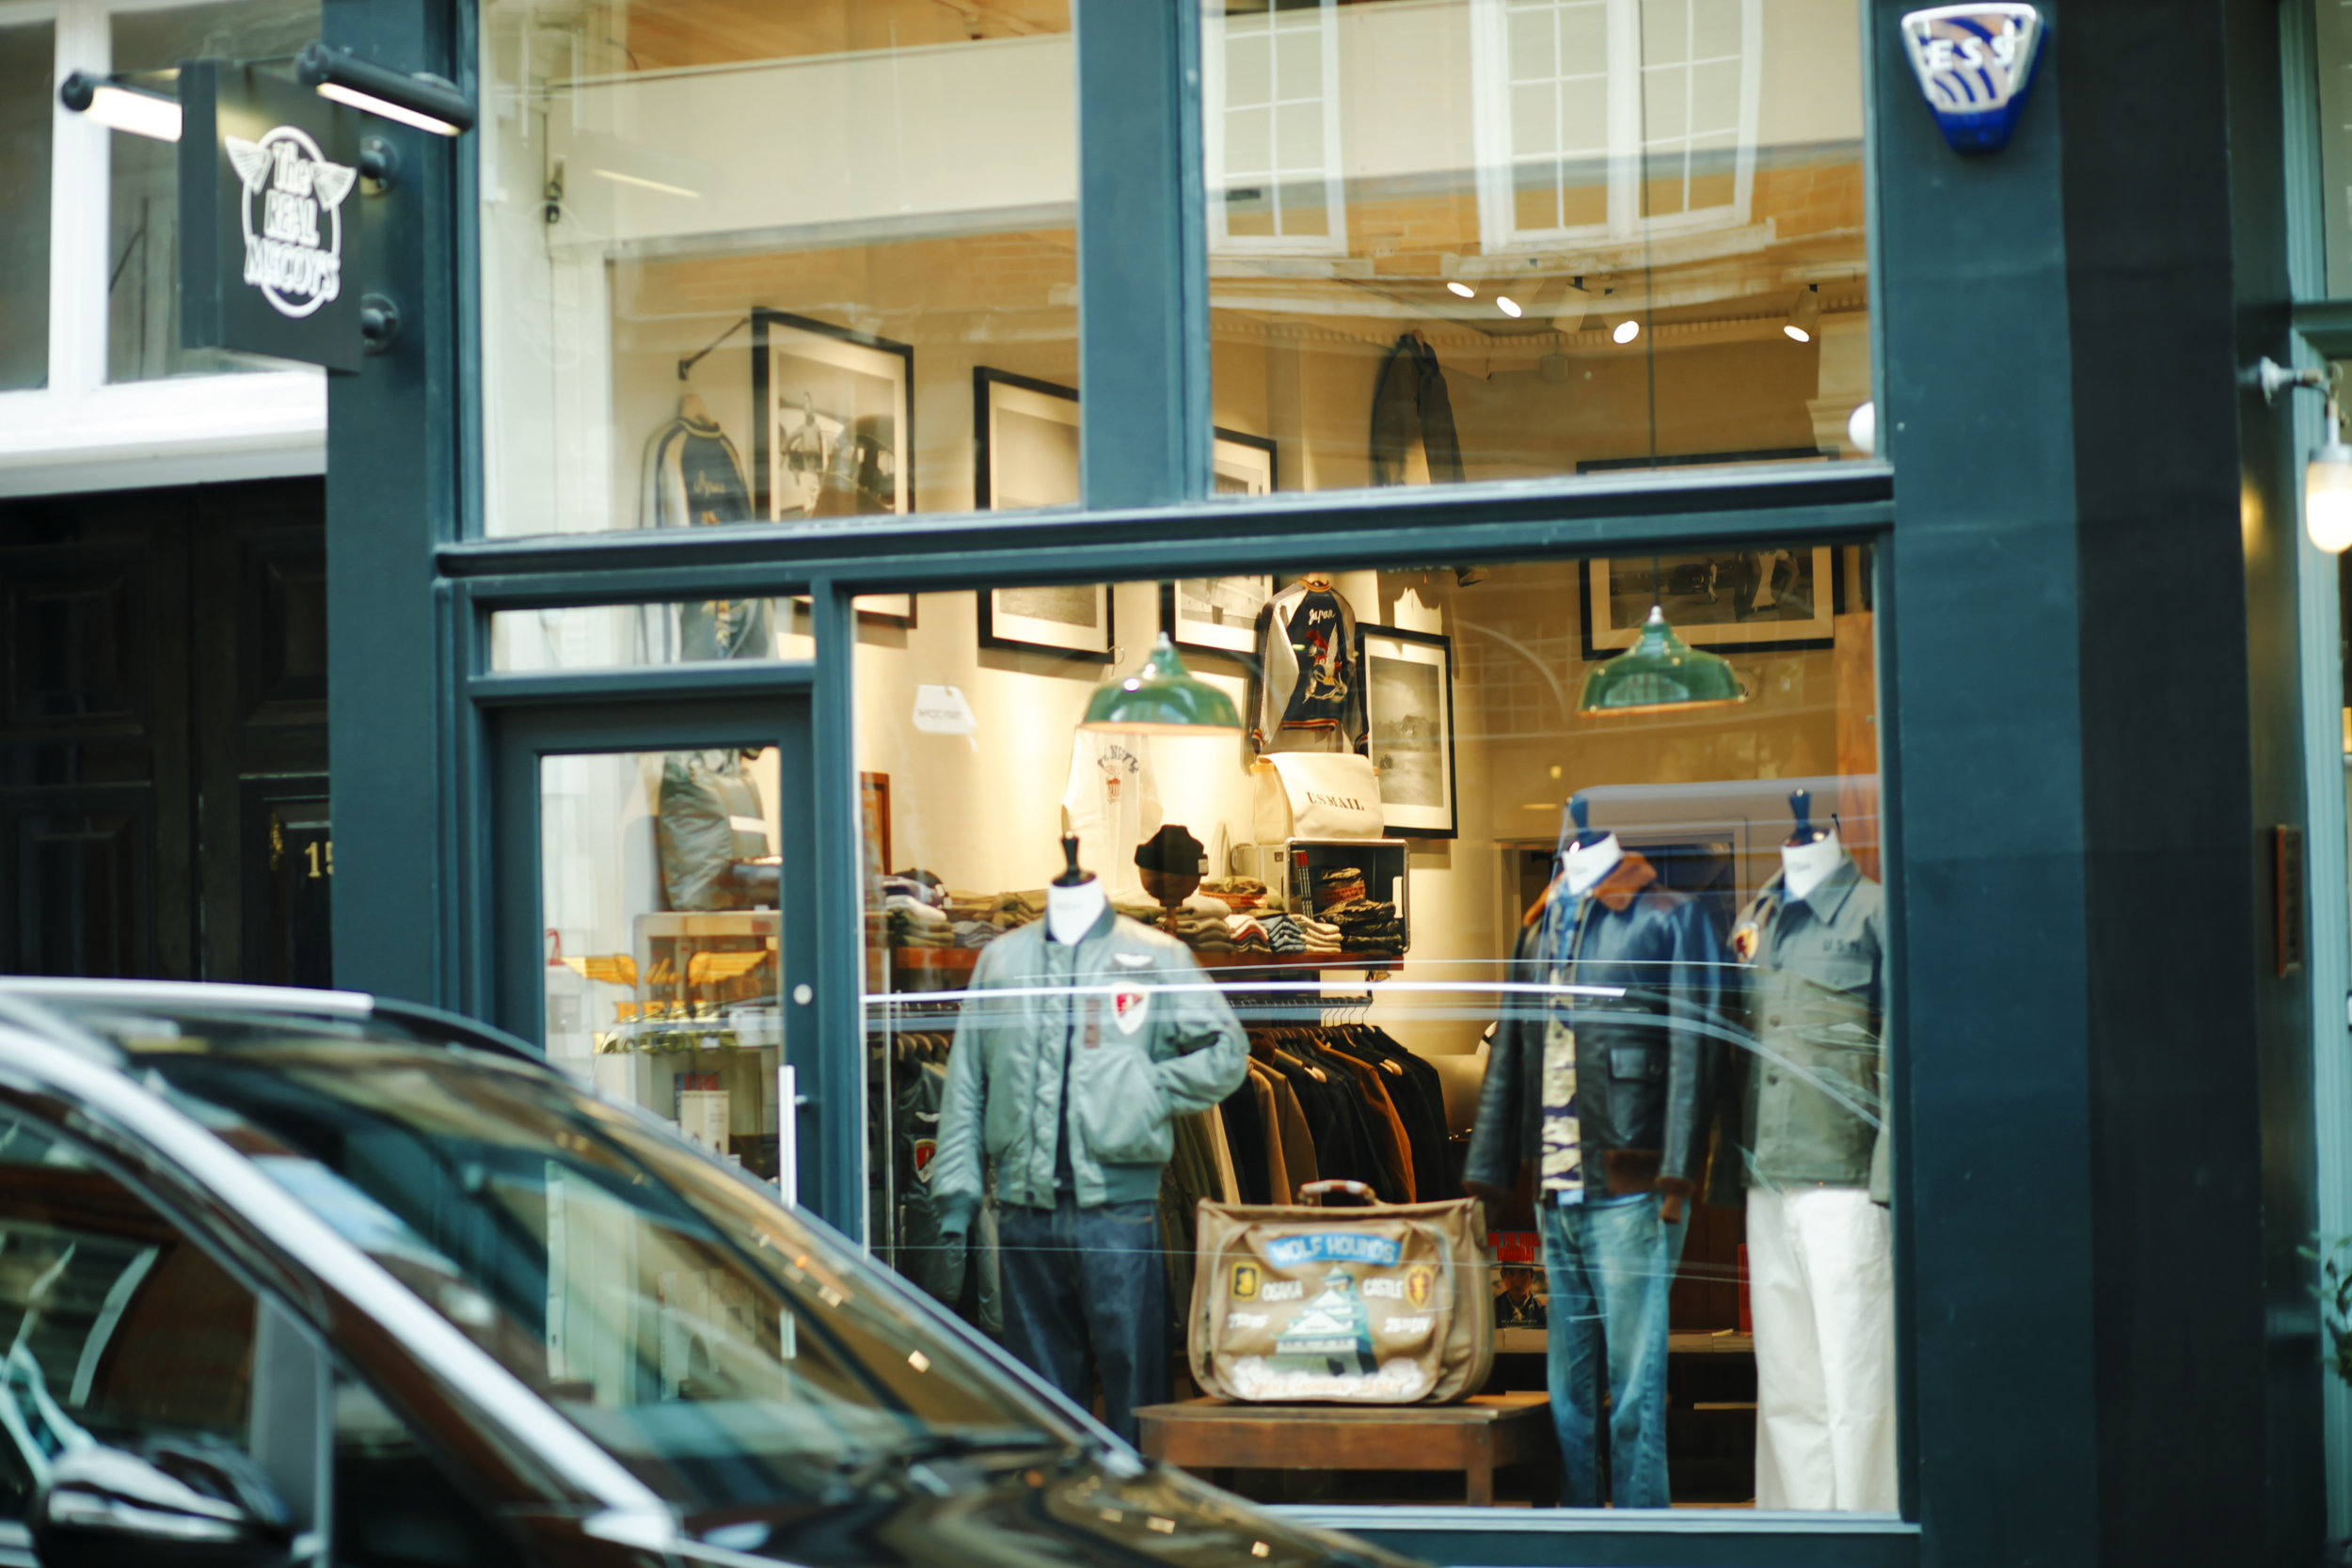 The Real McCoy's London - Boutique londonienne